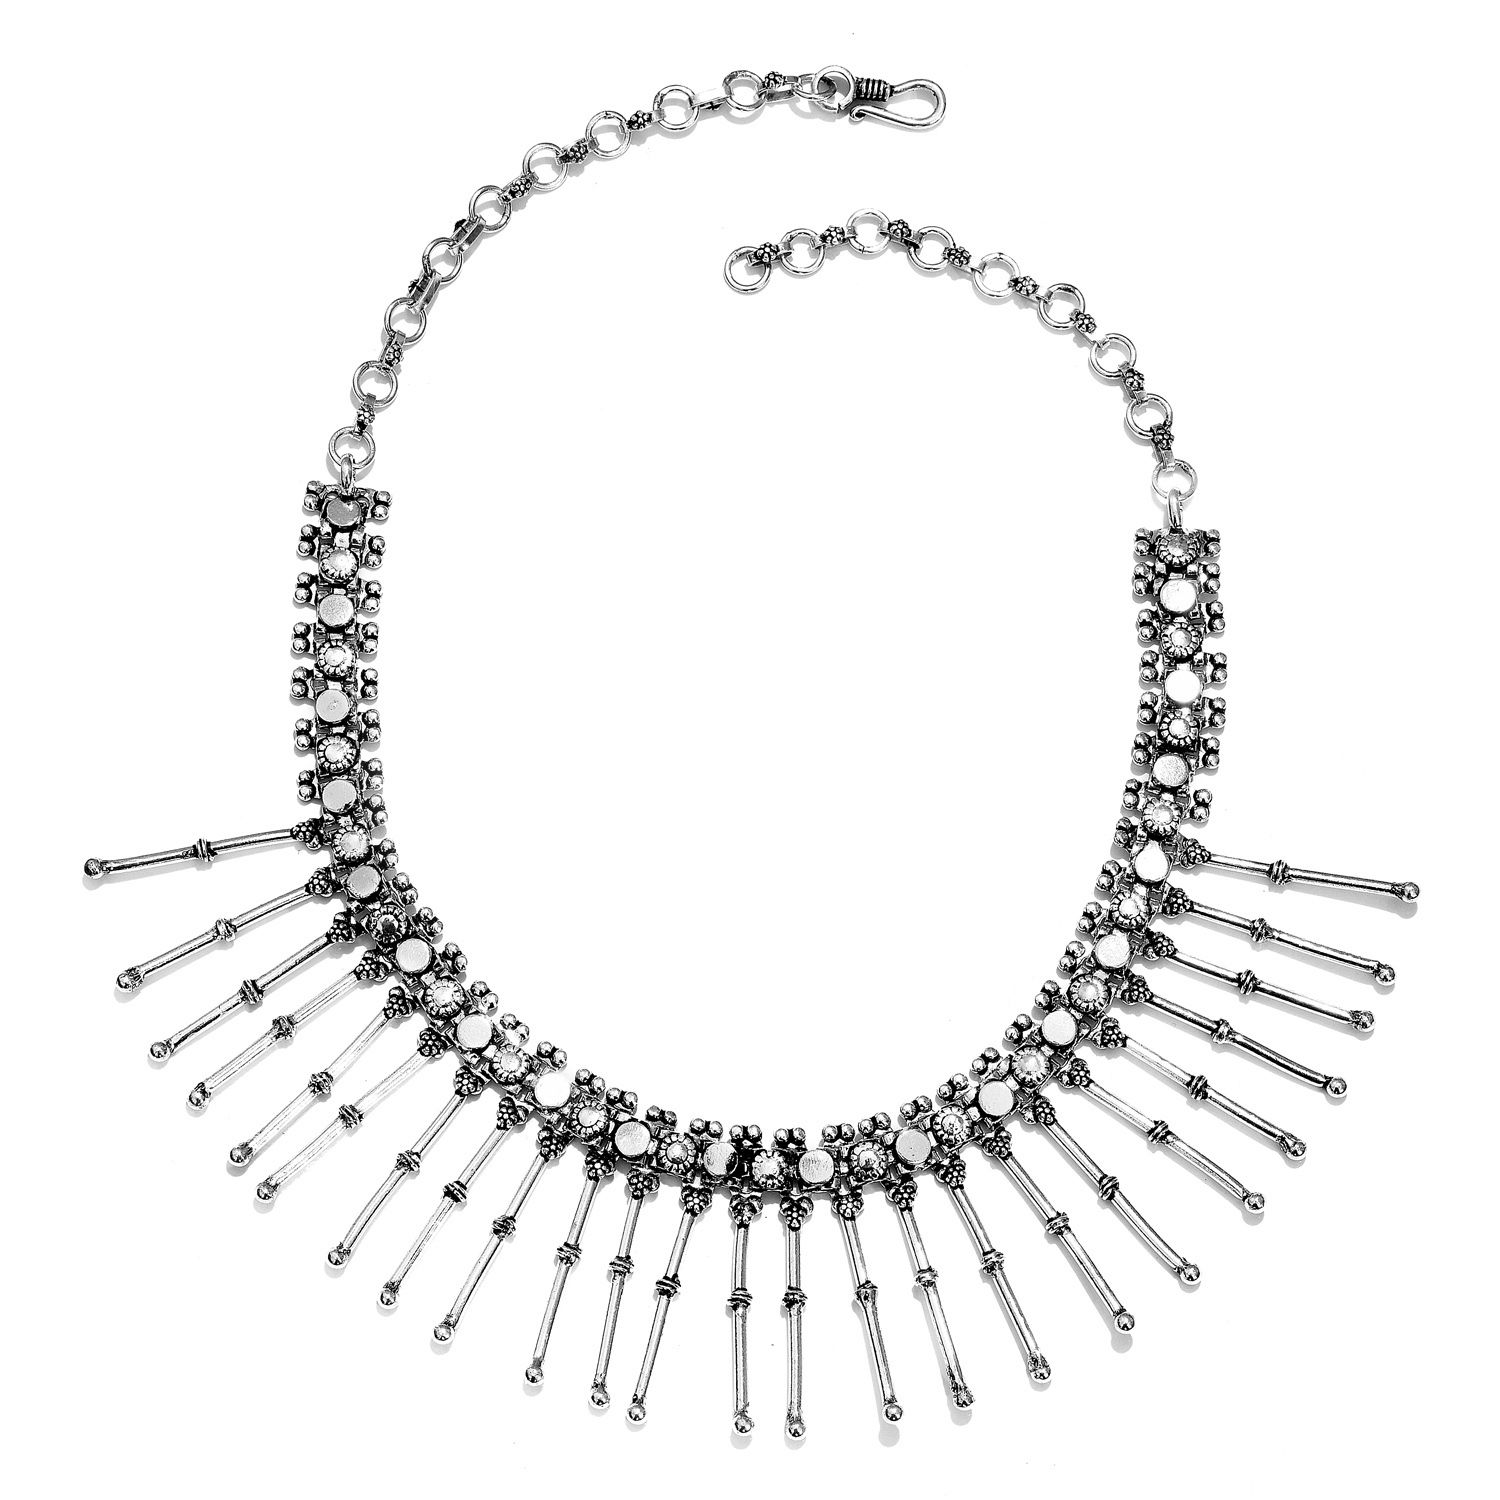 Tribal Collection of India Sterling Silver Necklace (18 in, 85 g)